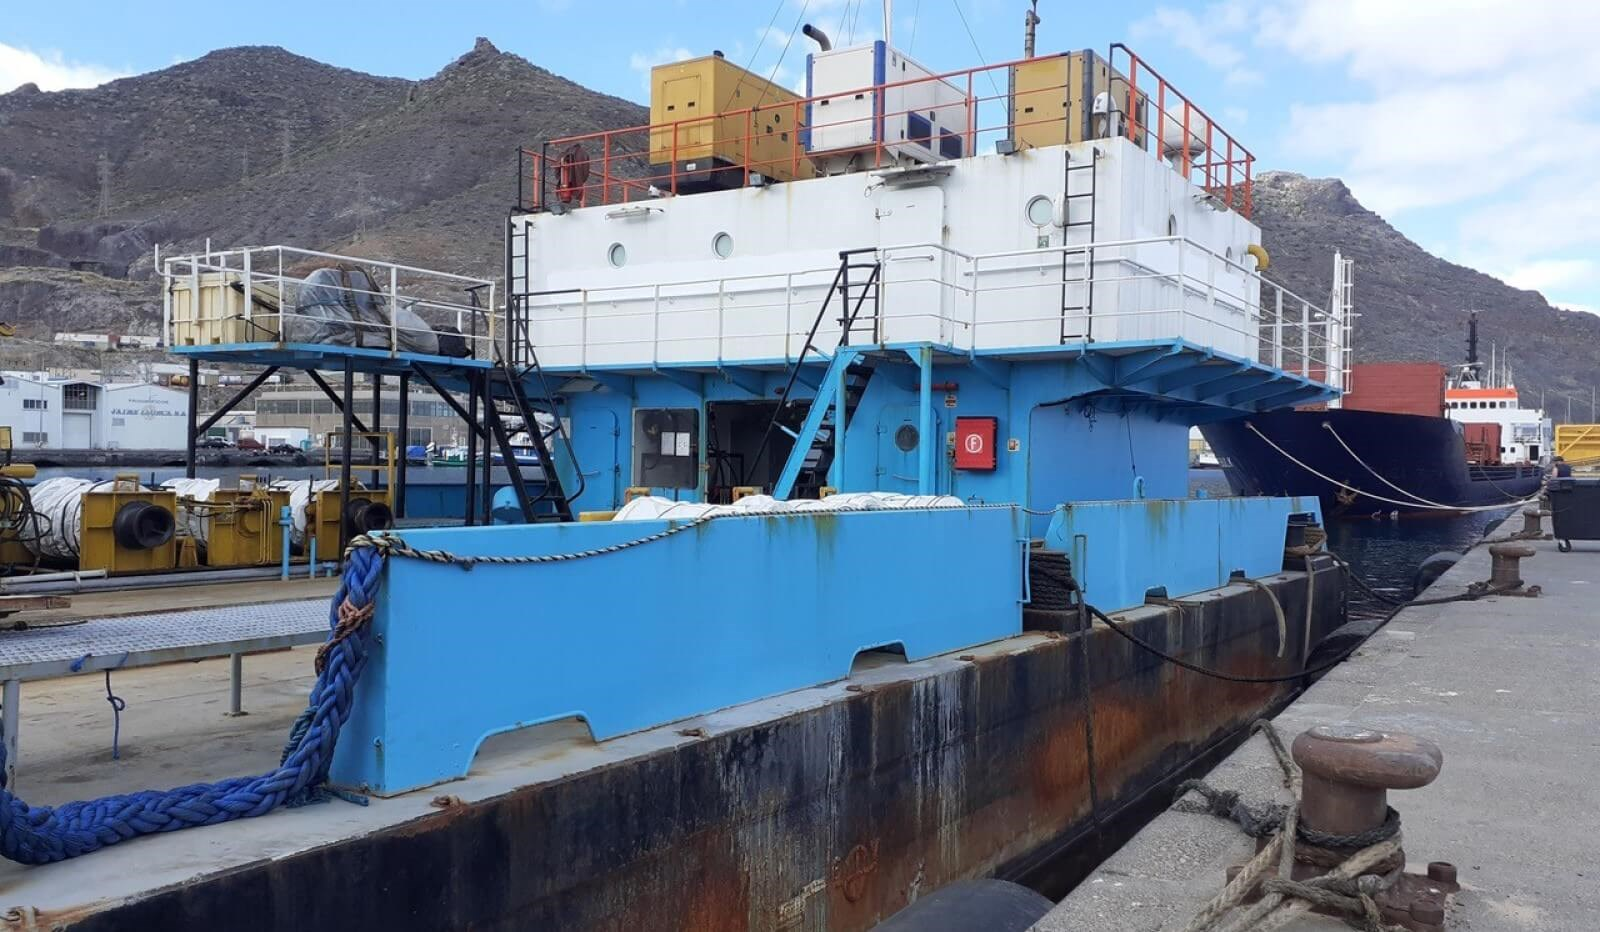 accommodation barge for sale 07600 (11)